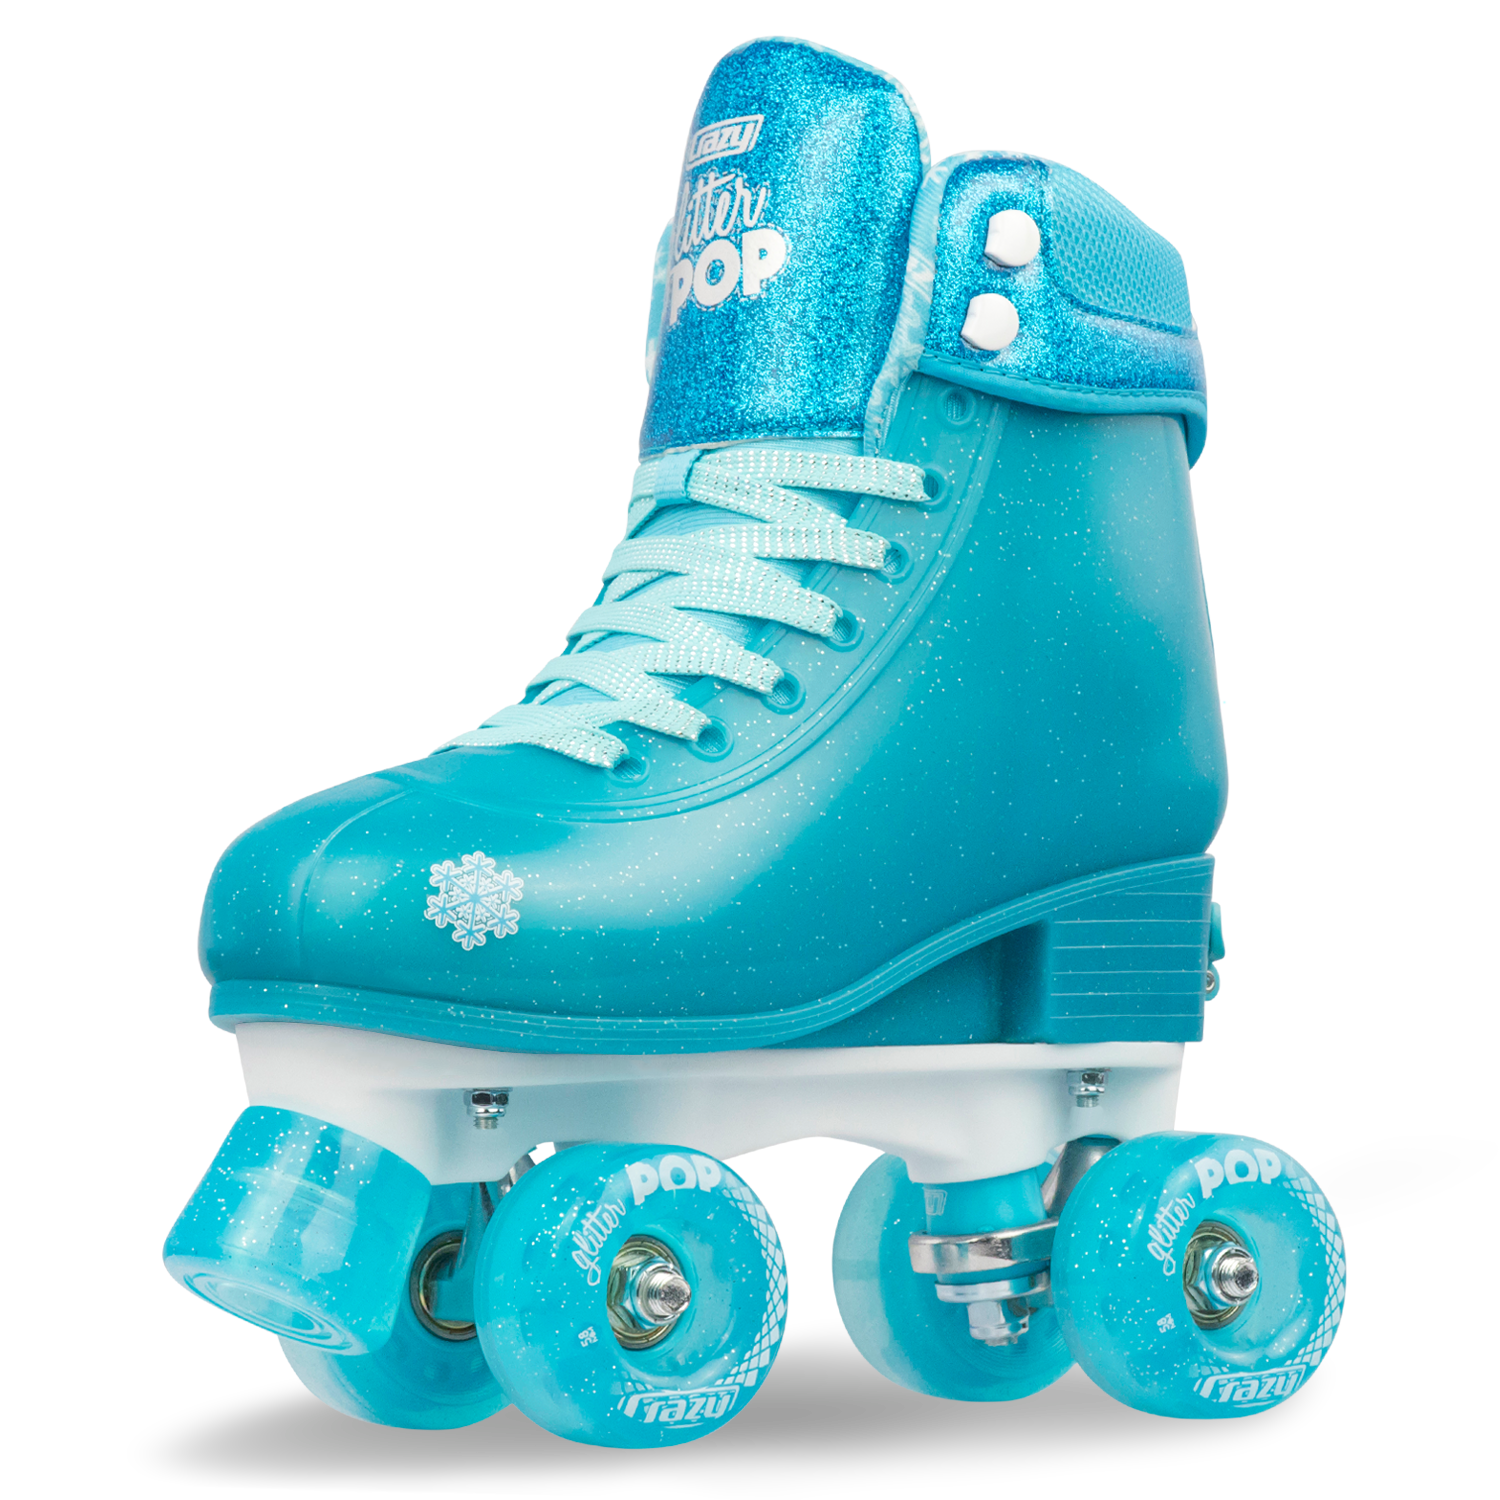 INSTOCK! CRAZY Glitter Teal POP Adjustable Size 3-6 Roller Skates